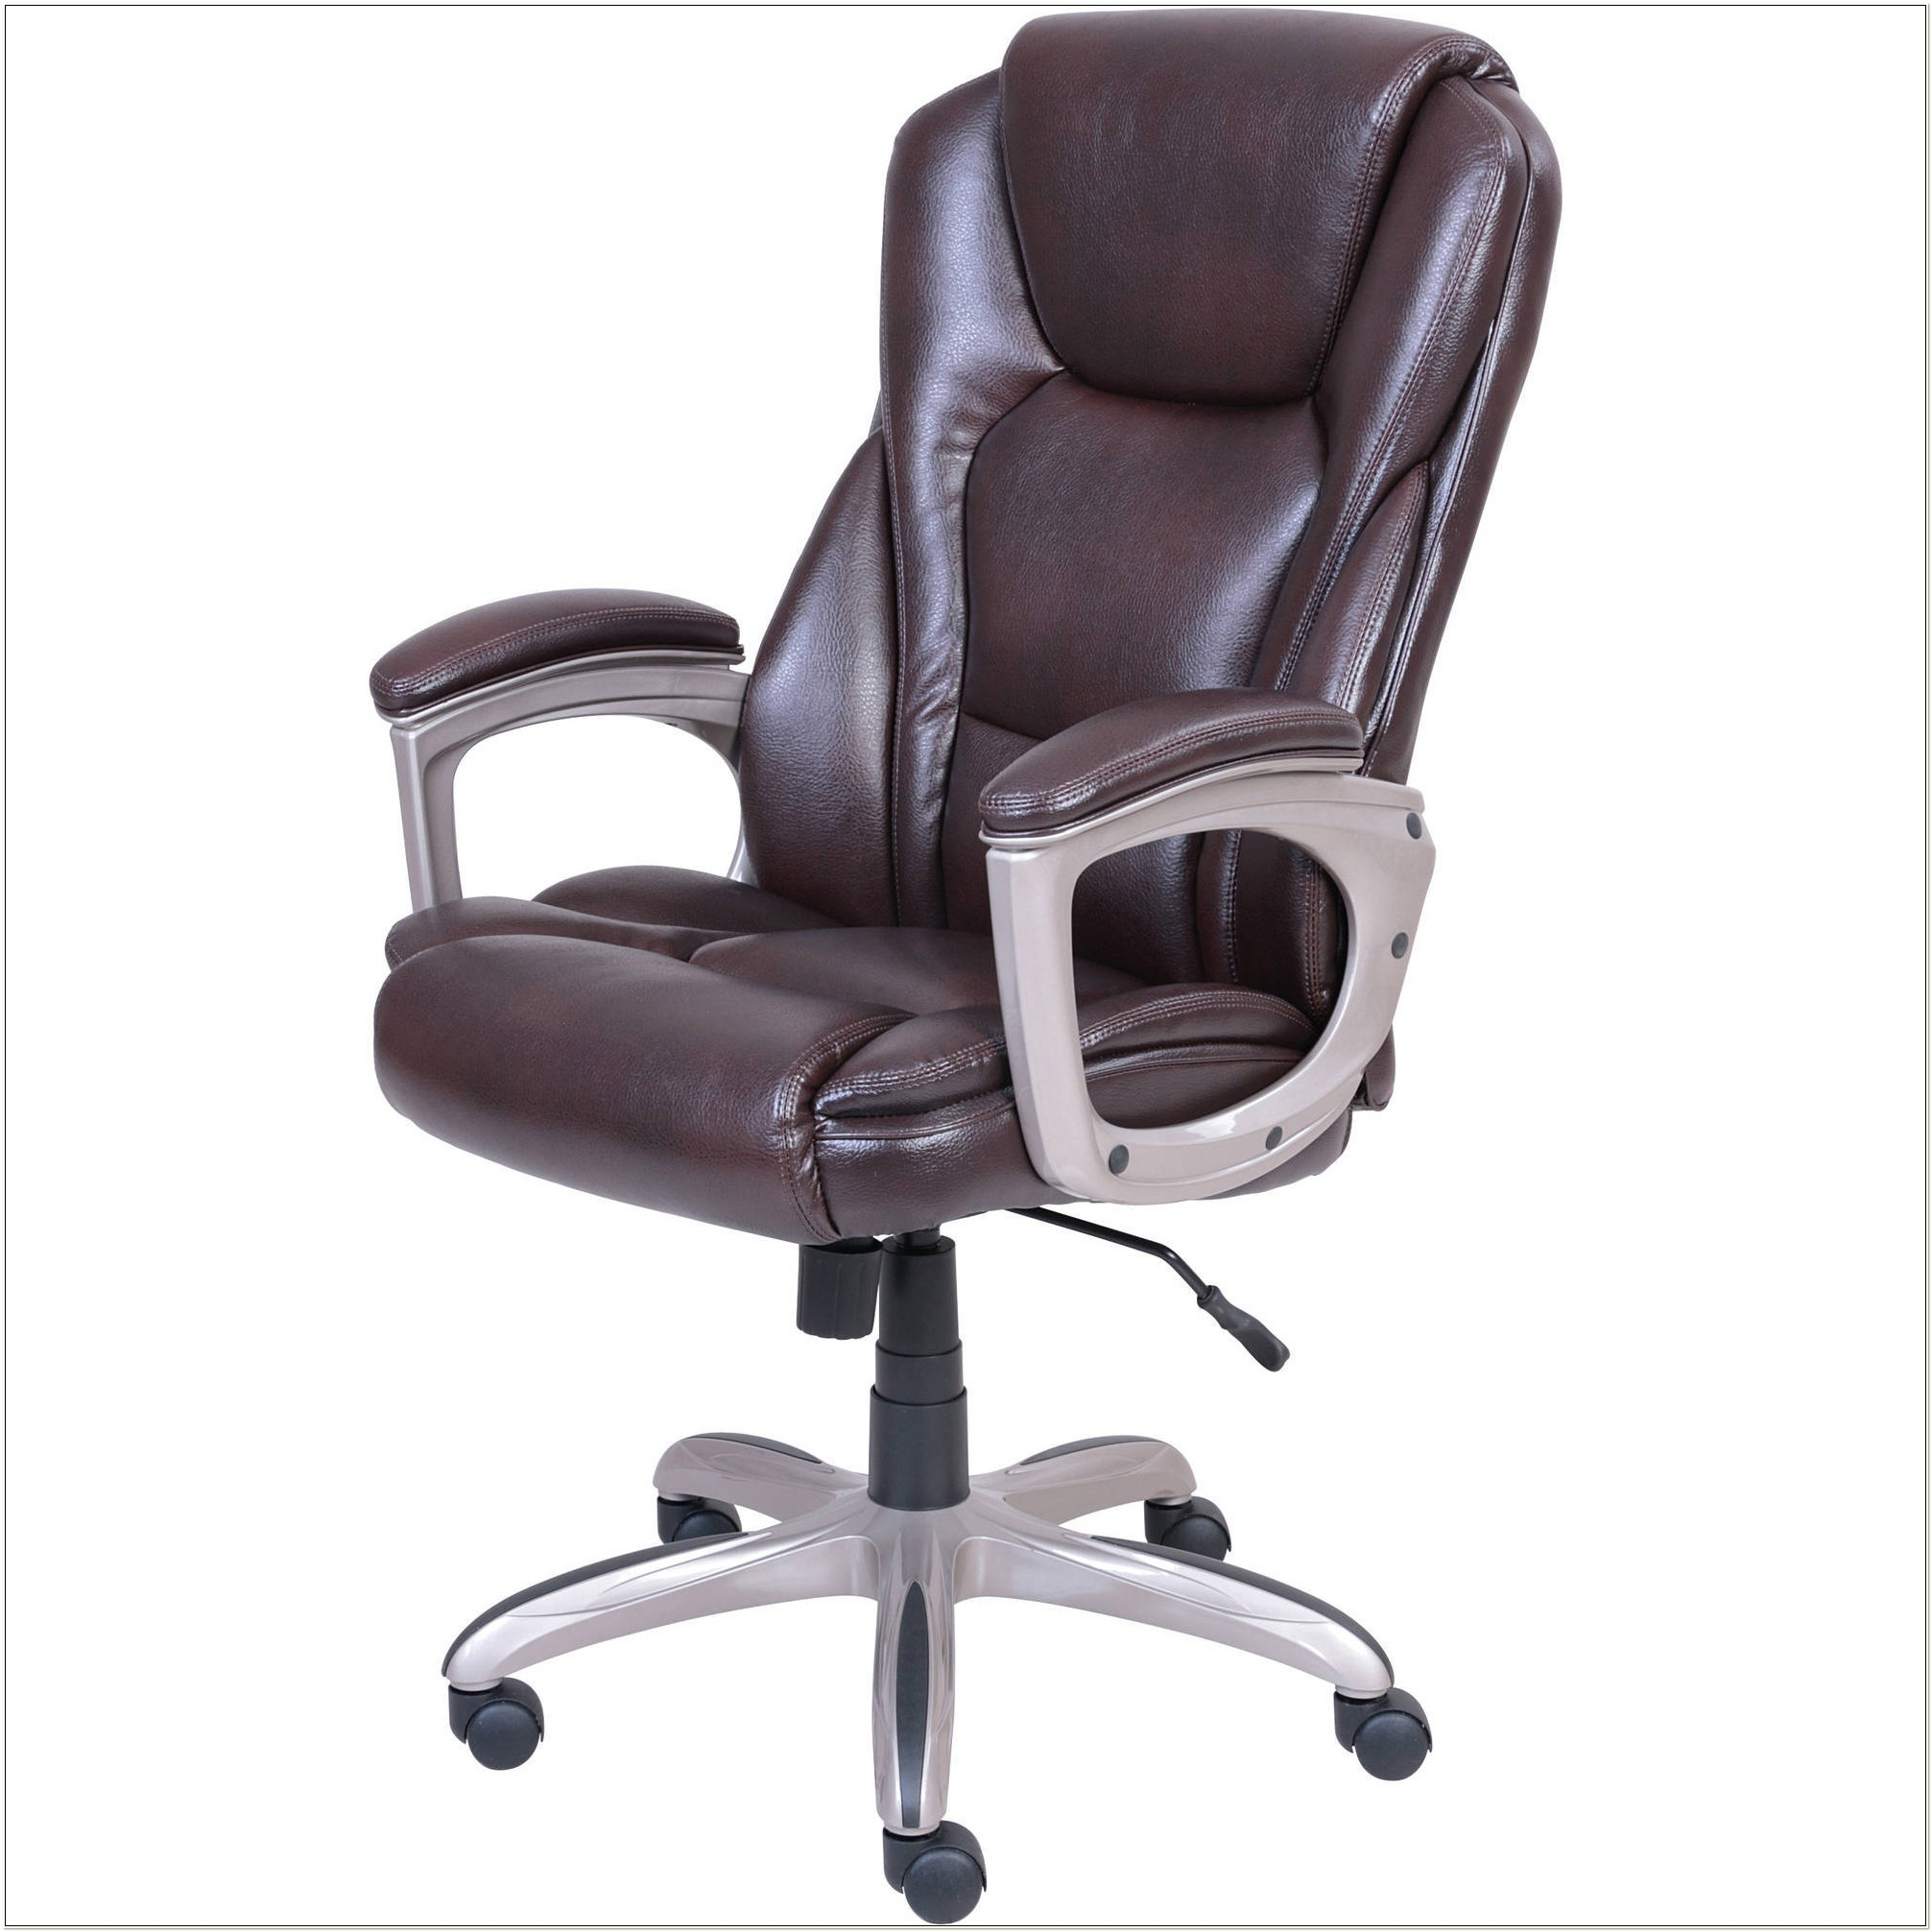 Computer Desk Chair Walmart